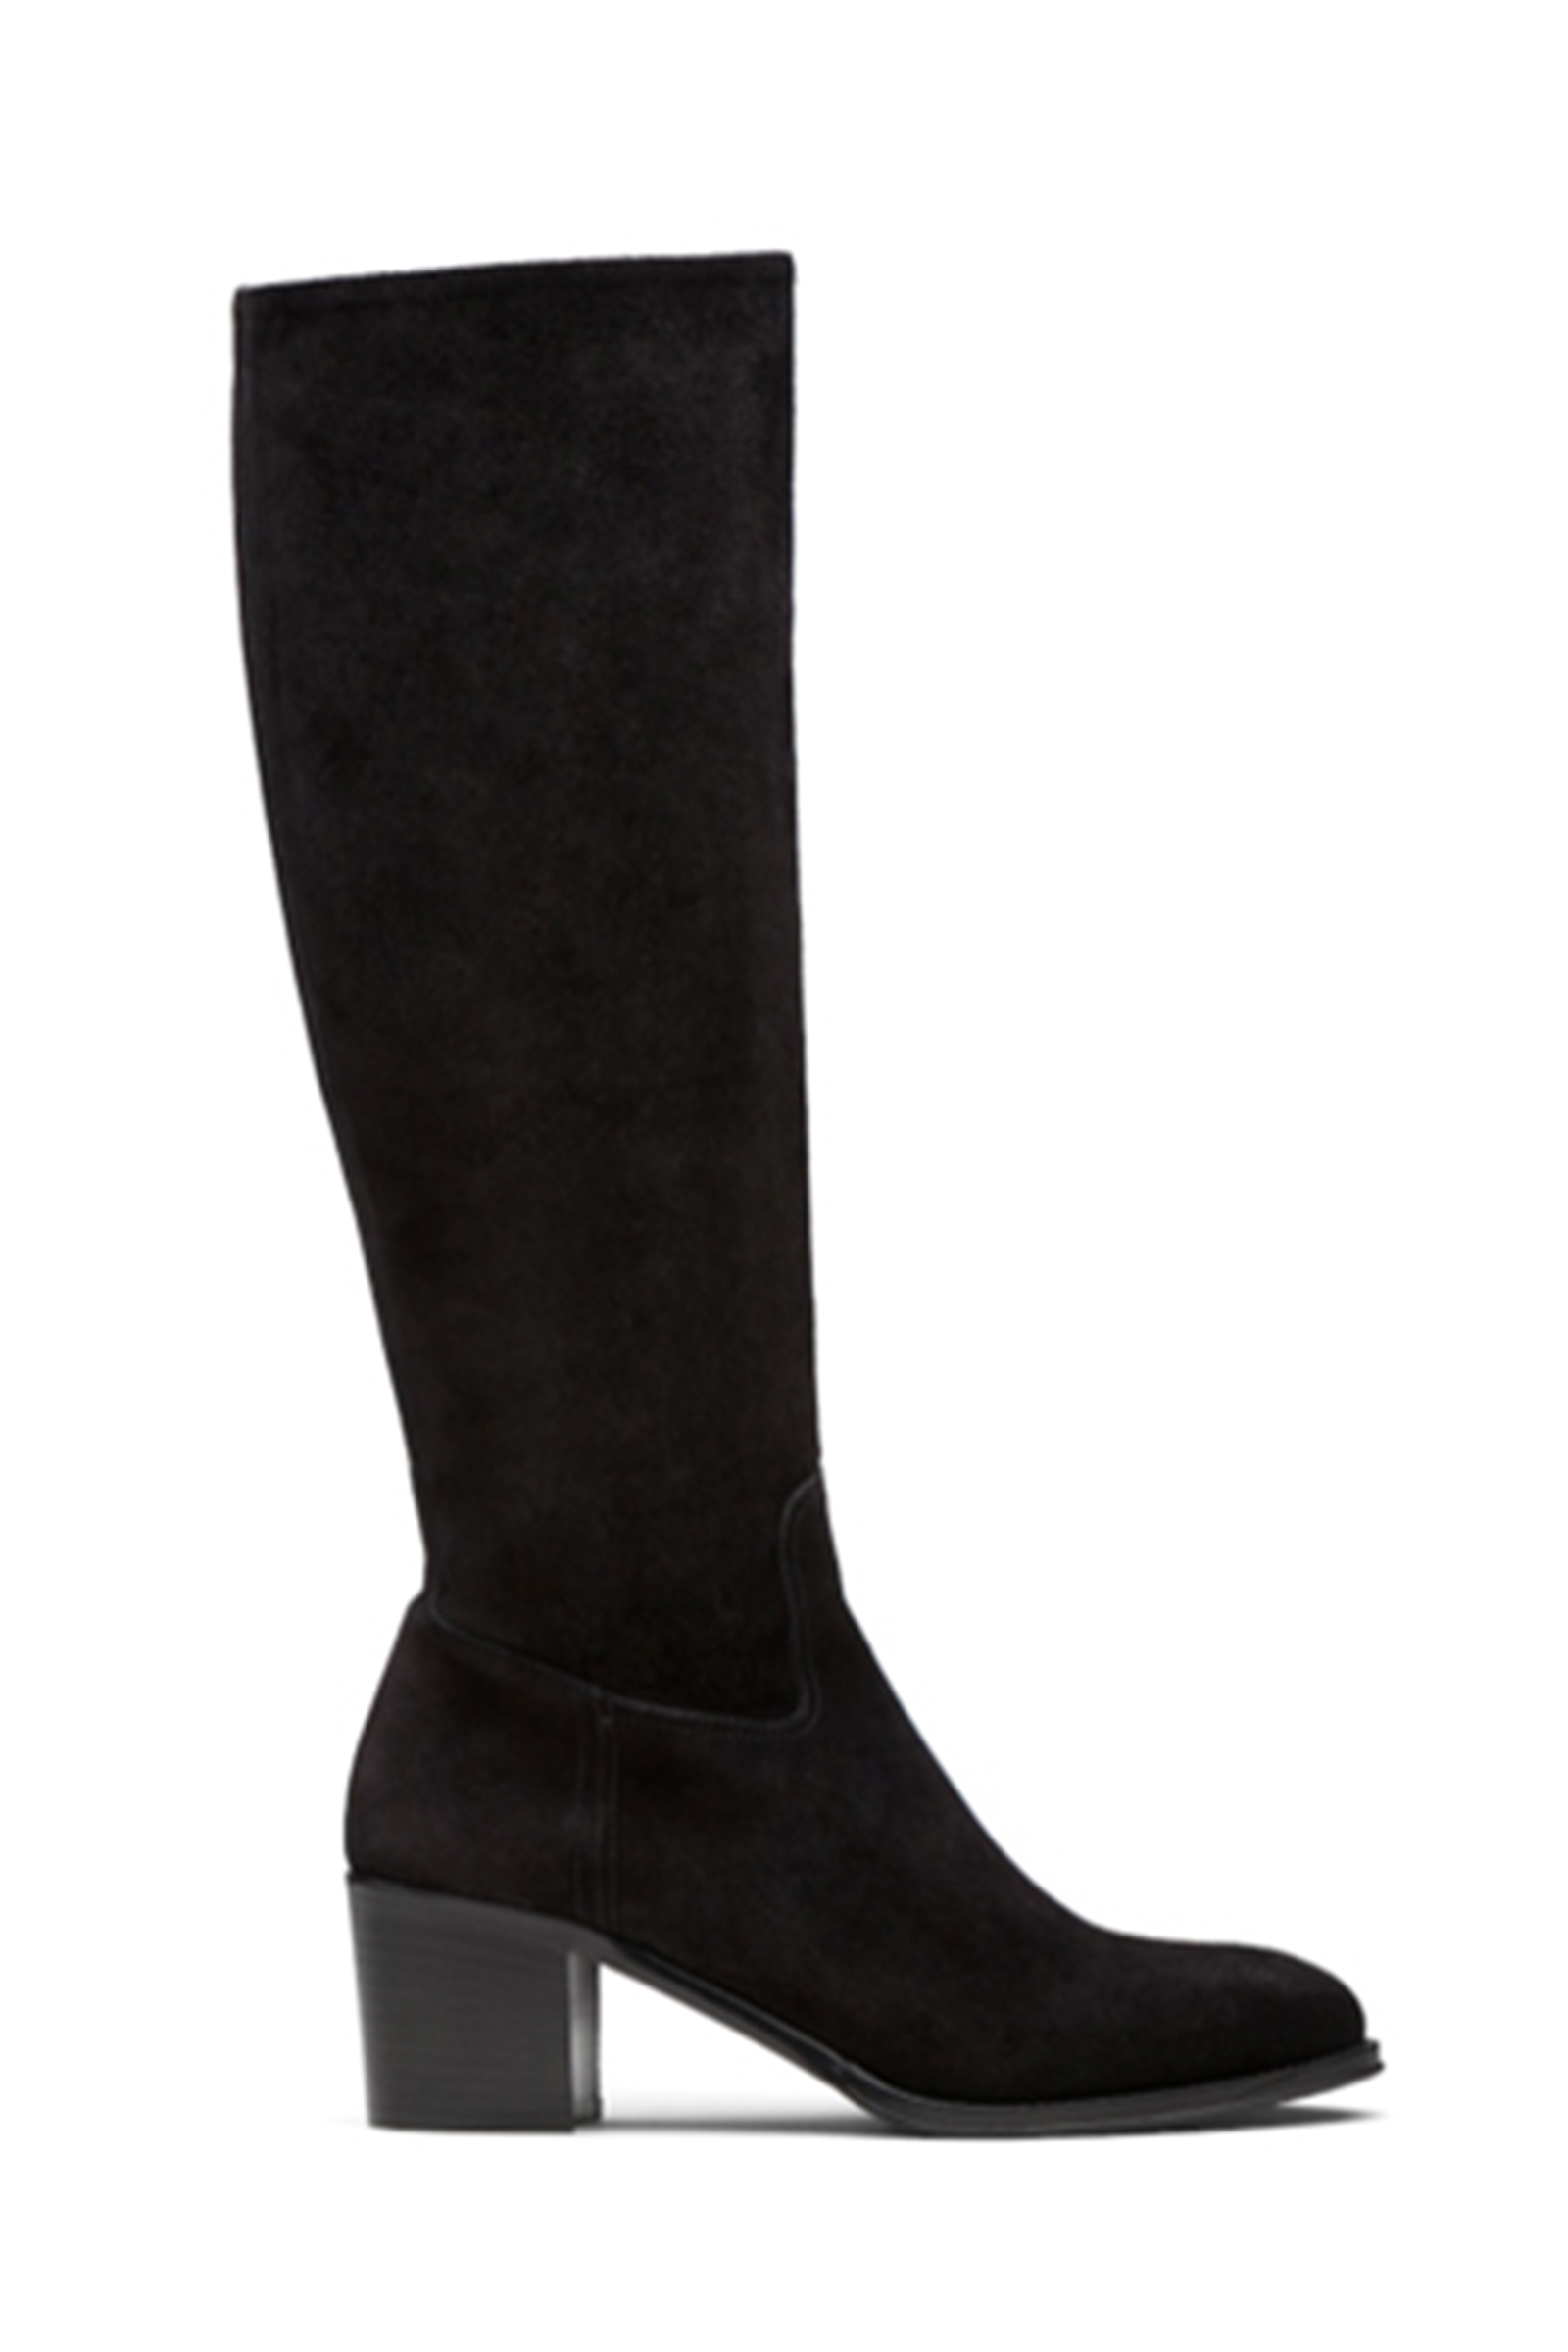 Church's-Suede-Knee-High-Boot